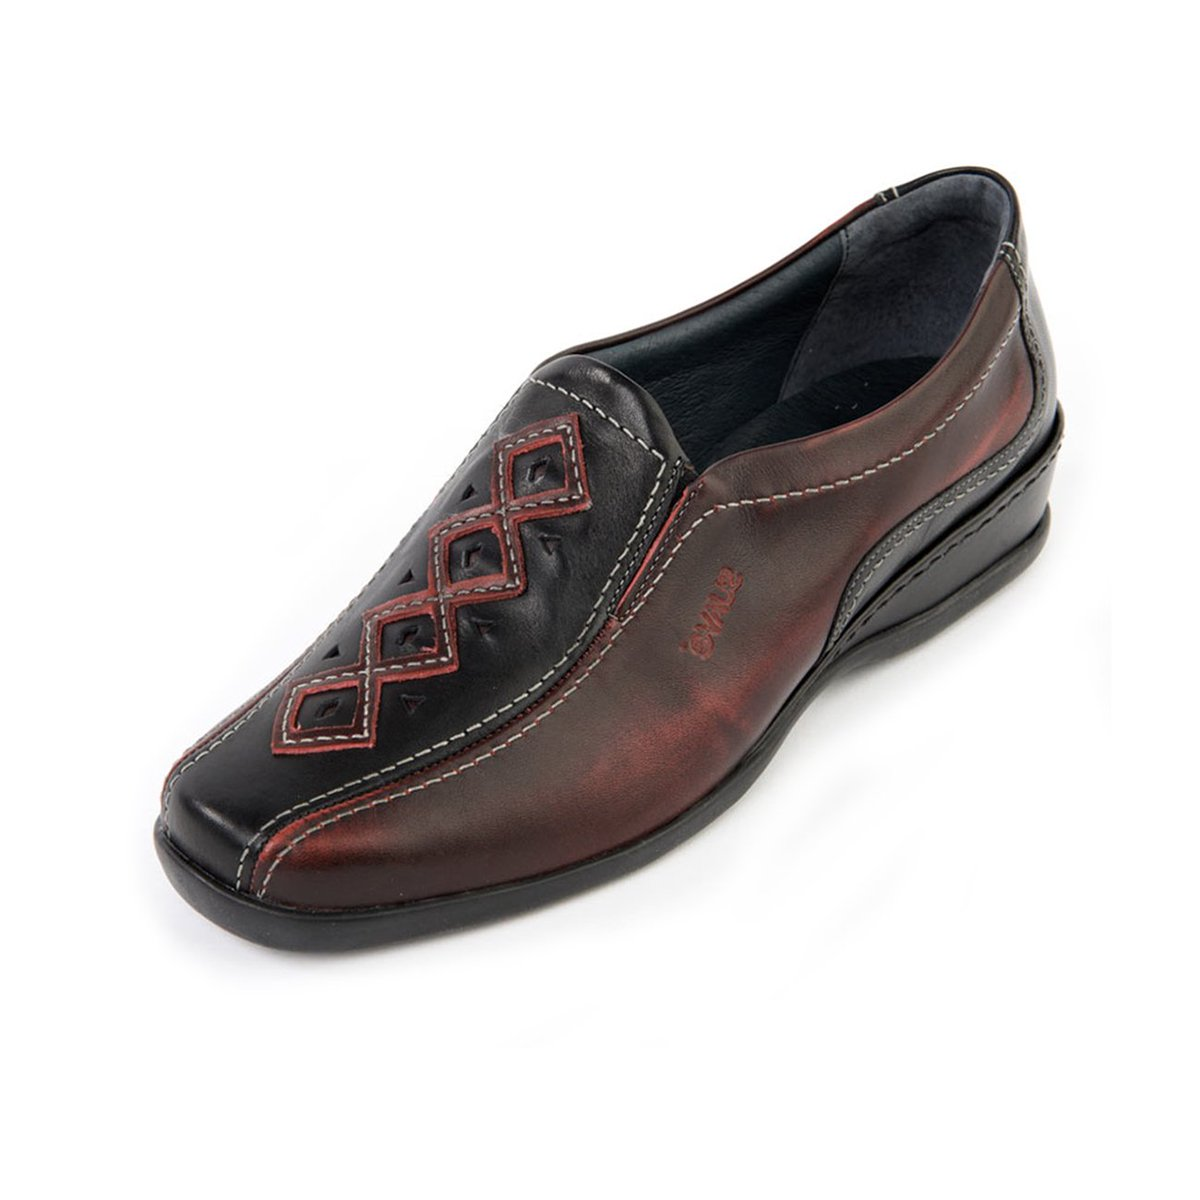 Monica Ladies Shoes (EE) 47% Off! Now only £39.95! In our summer sale! #summersale #specialoffers #comfort #shoes  https://www. sandpipershoes.com/special-offers /shoe-offers/monica-ladies-shoe.html#maincontent &nbsp; … <br>http://pic.twitter.com/H0zoZMZYDf